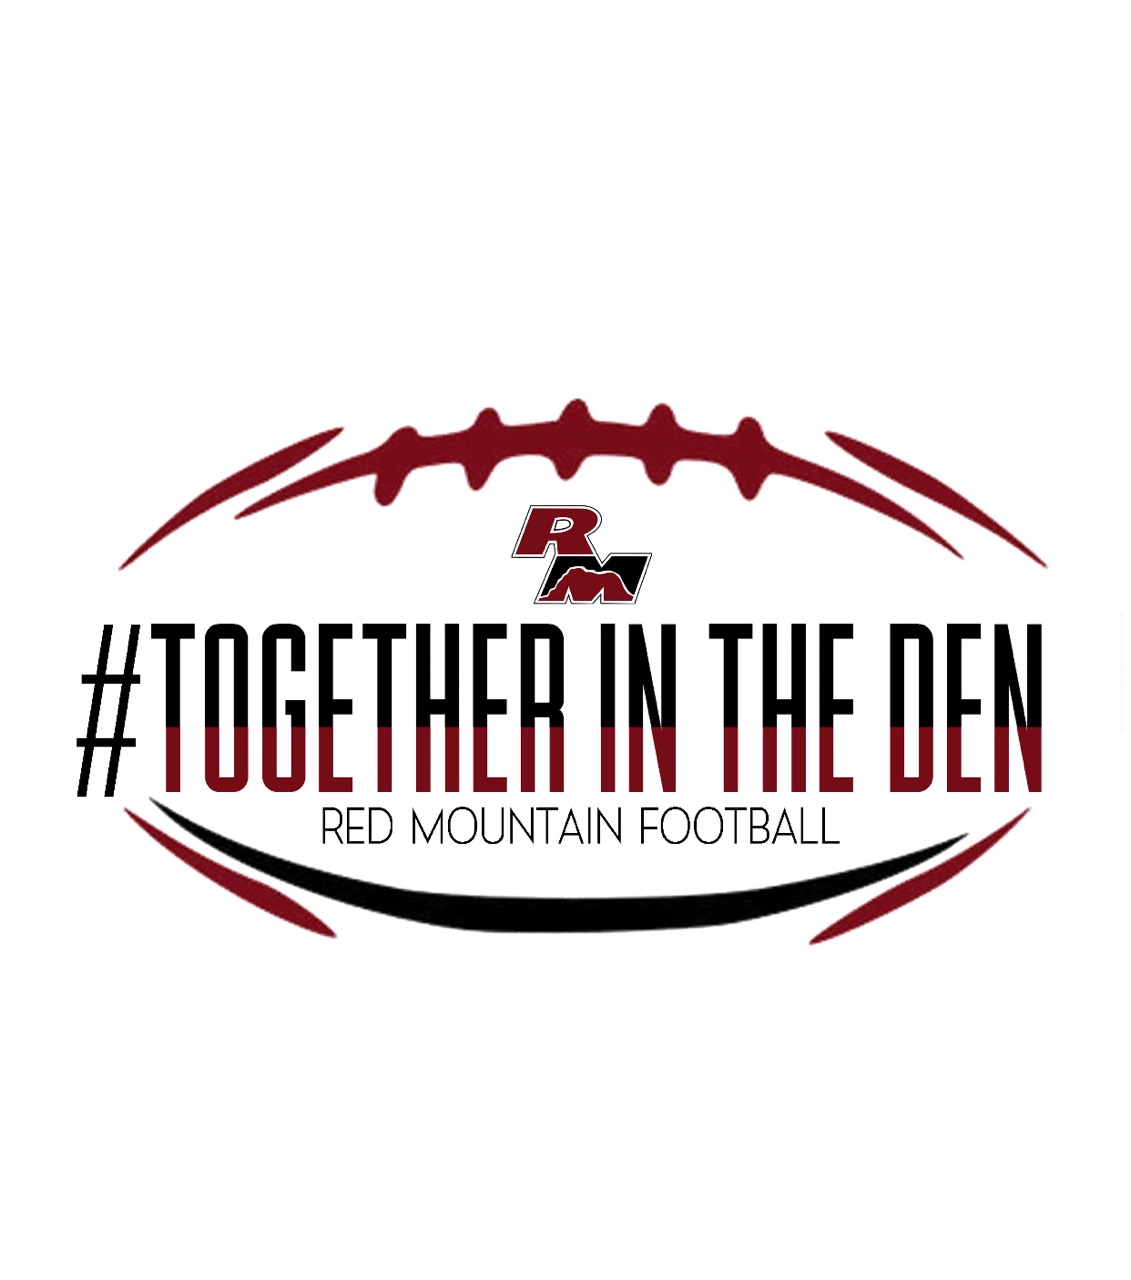 #together in the den - Click to learn more